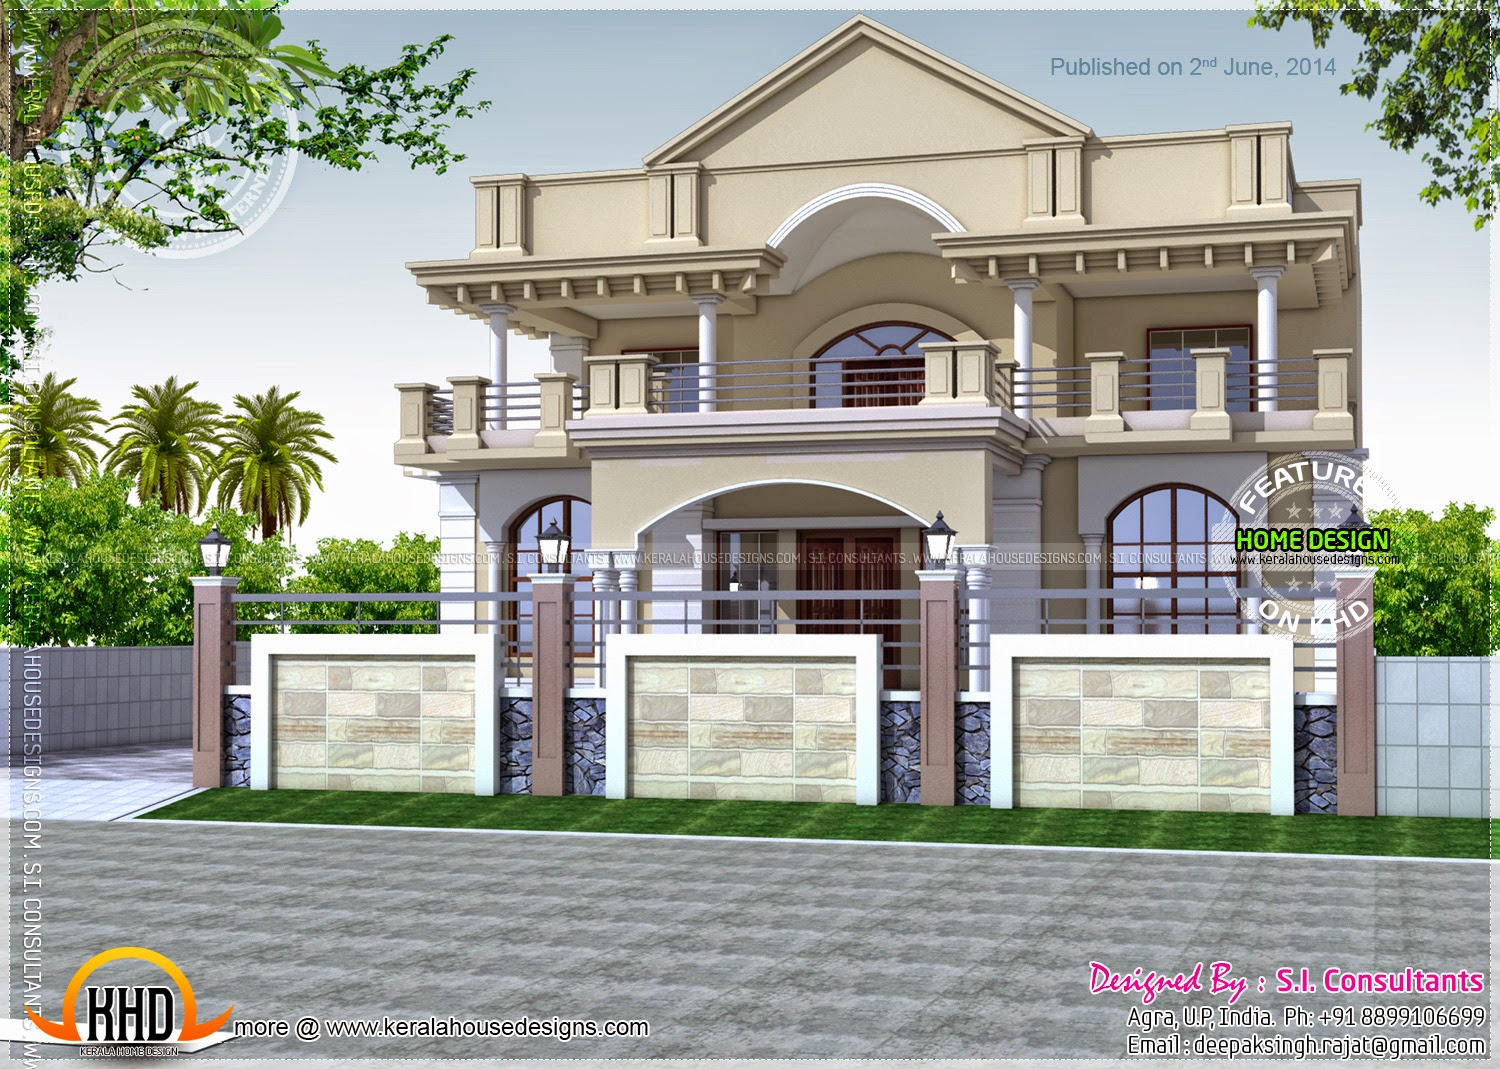 North Indian exterior house - Kerala home design and floor ...